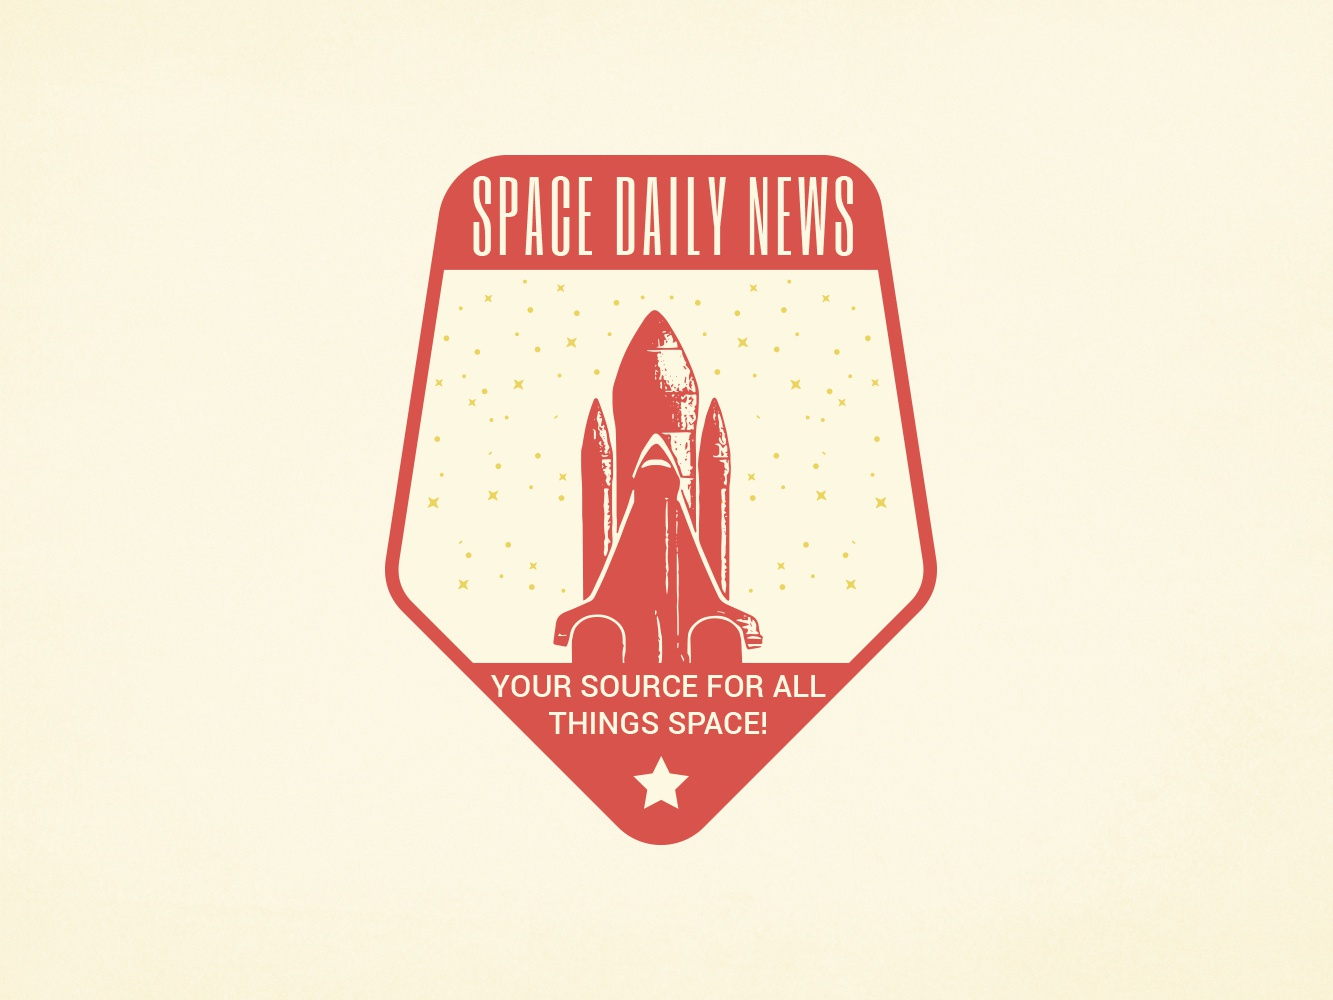 Space Daily News badge vintage design logo sarahgraphics news daily space